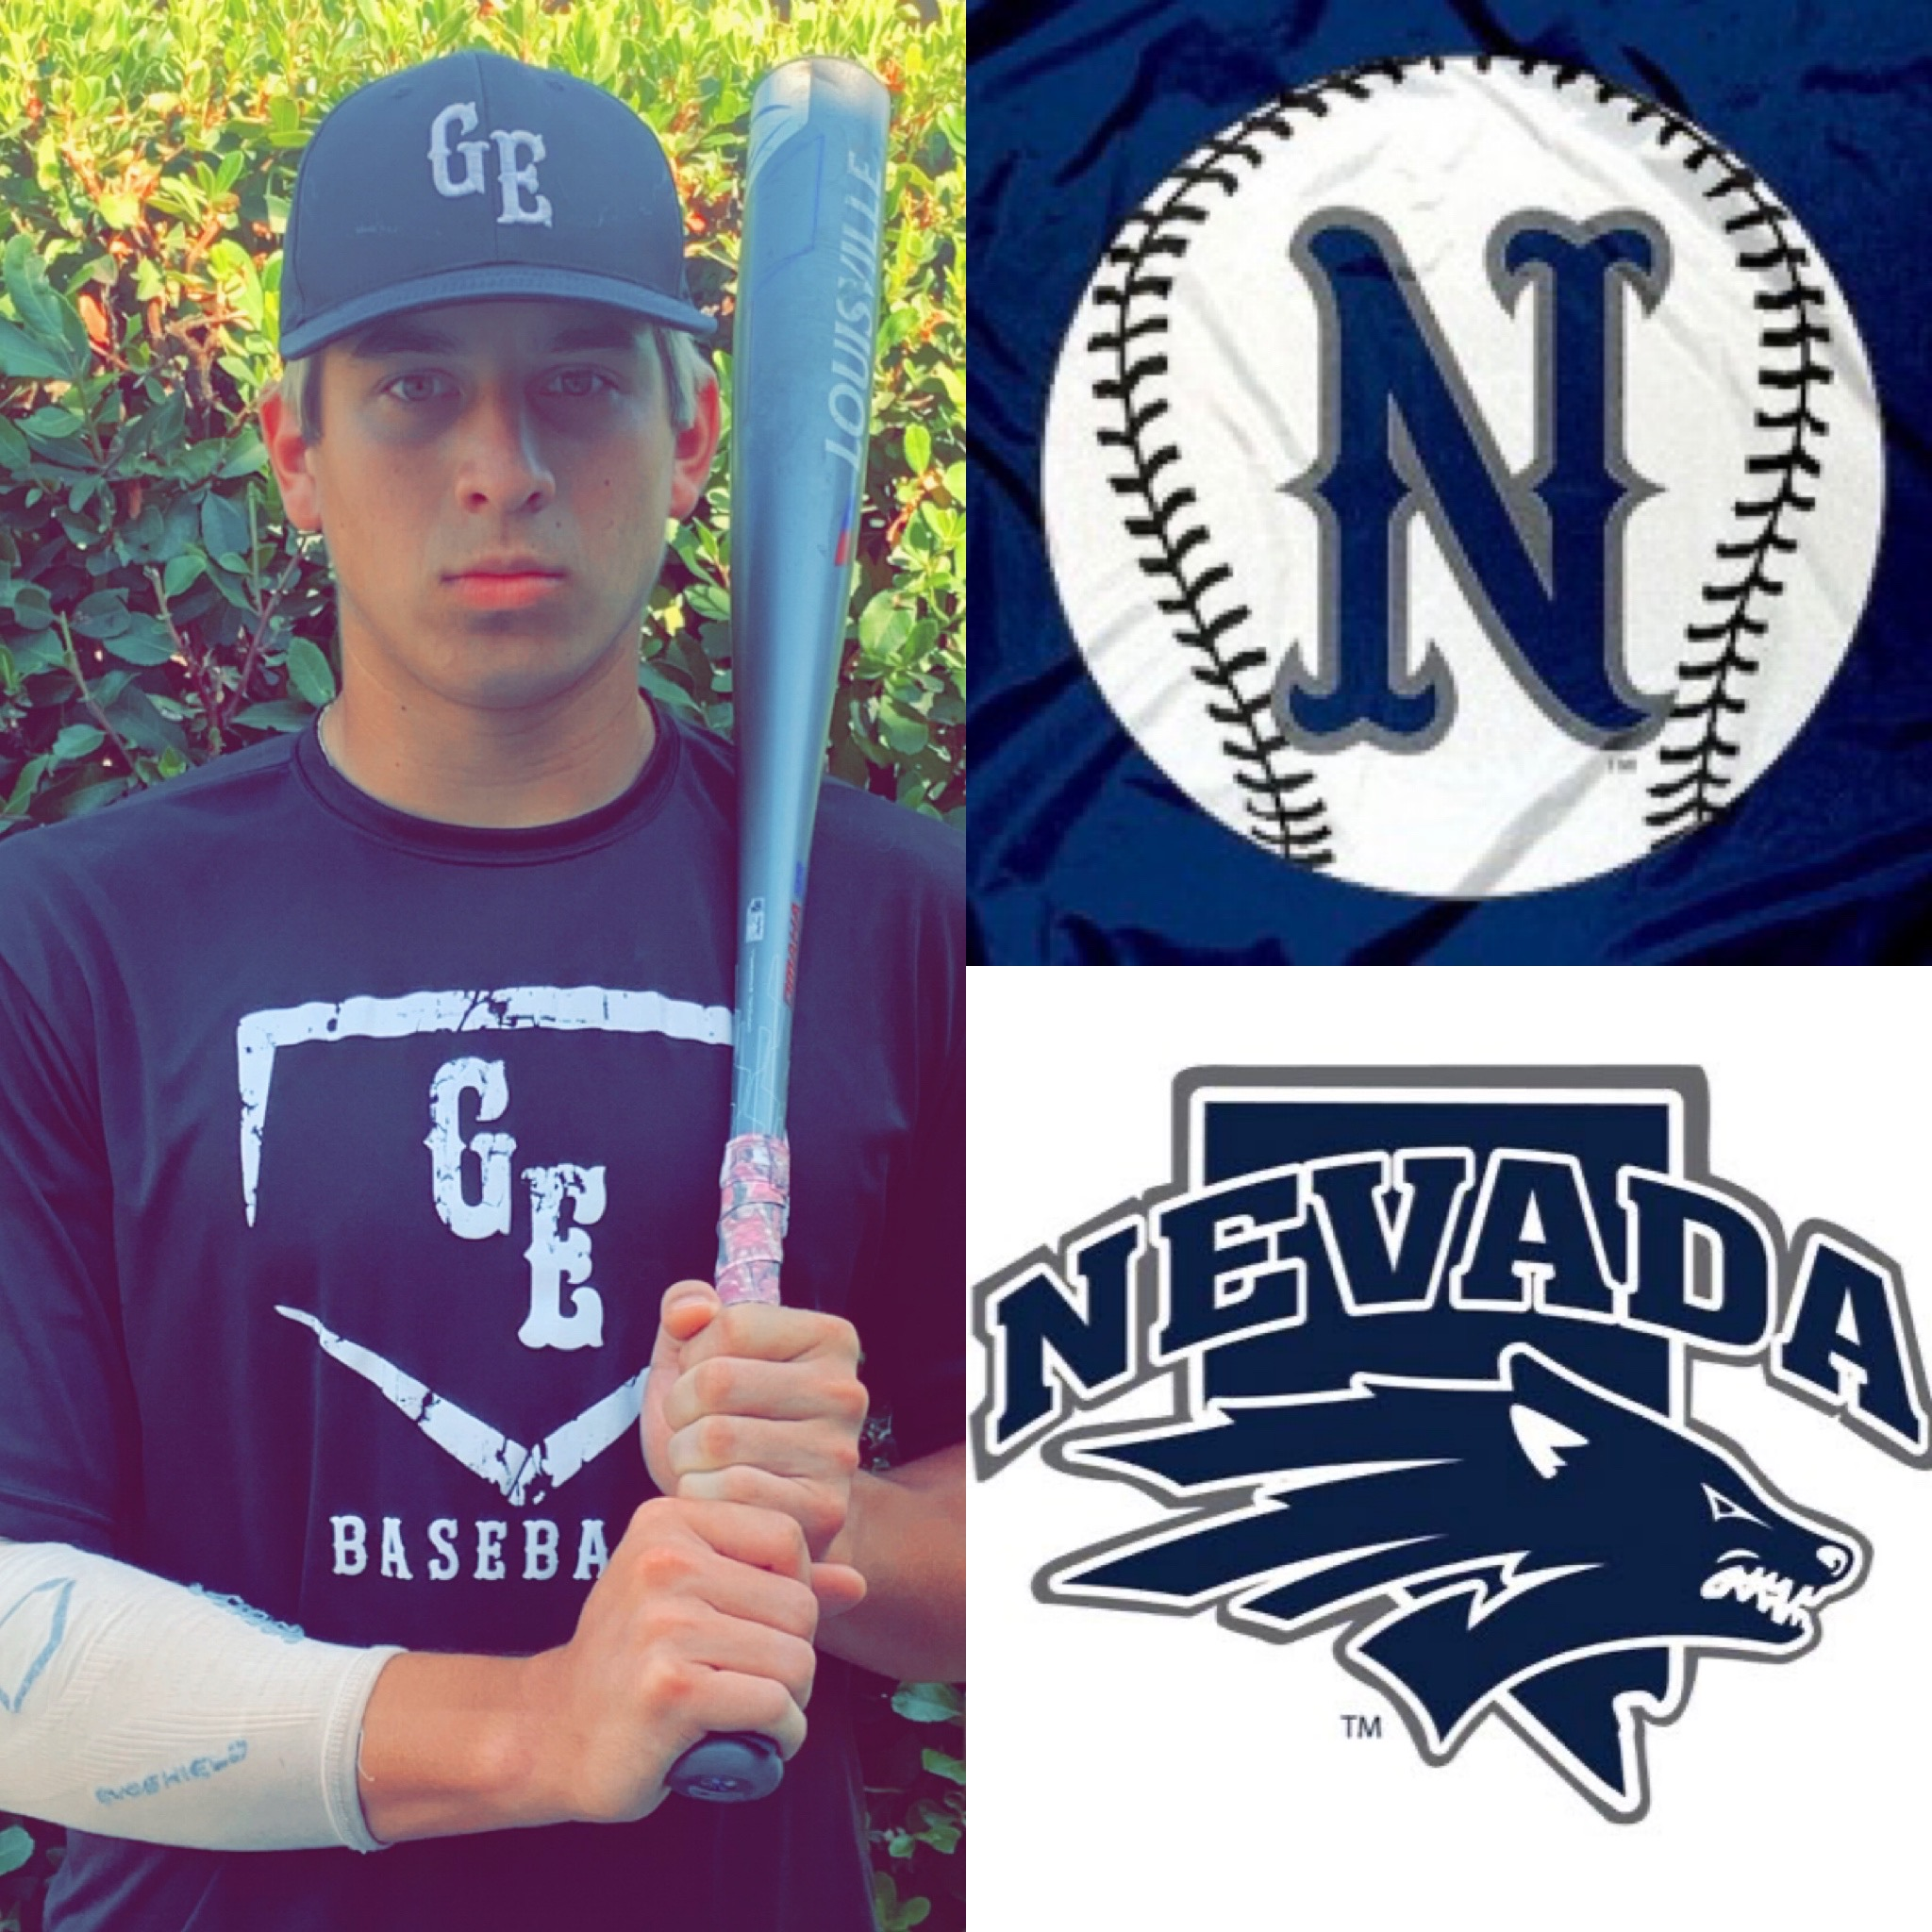 Nate Vargas - U of Nevada